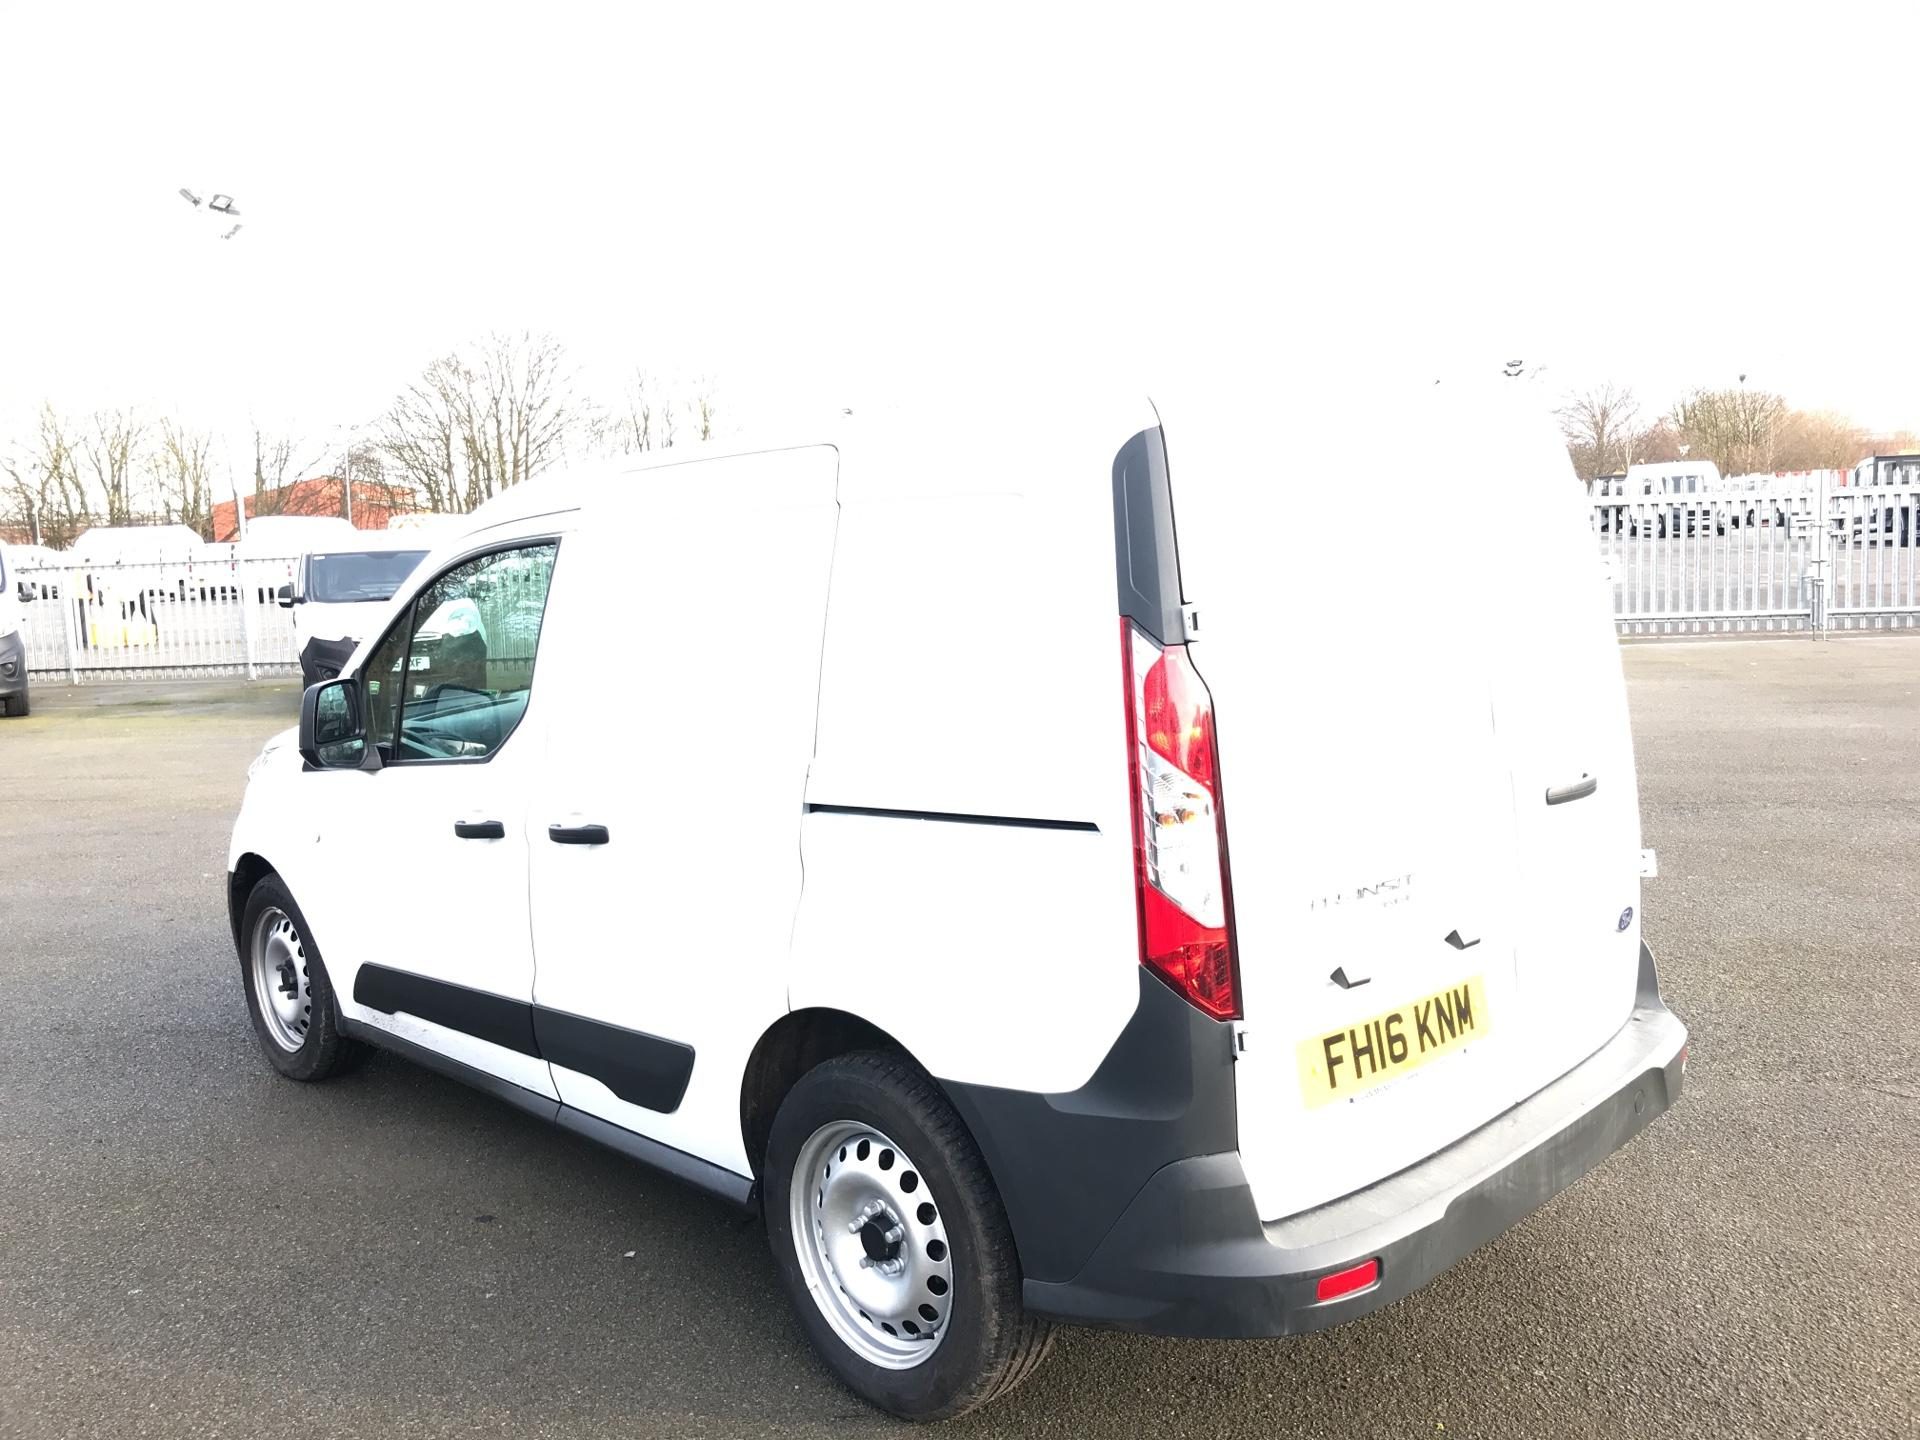 2016 Ford Transit Connect 220 L1 DIESEL 1.5 TDCi 75PS VAN EURO 6 EURO 6 (FH16KNM) Image 5